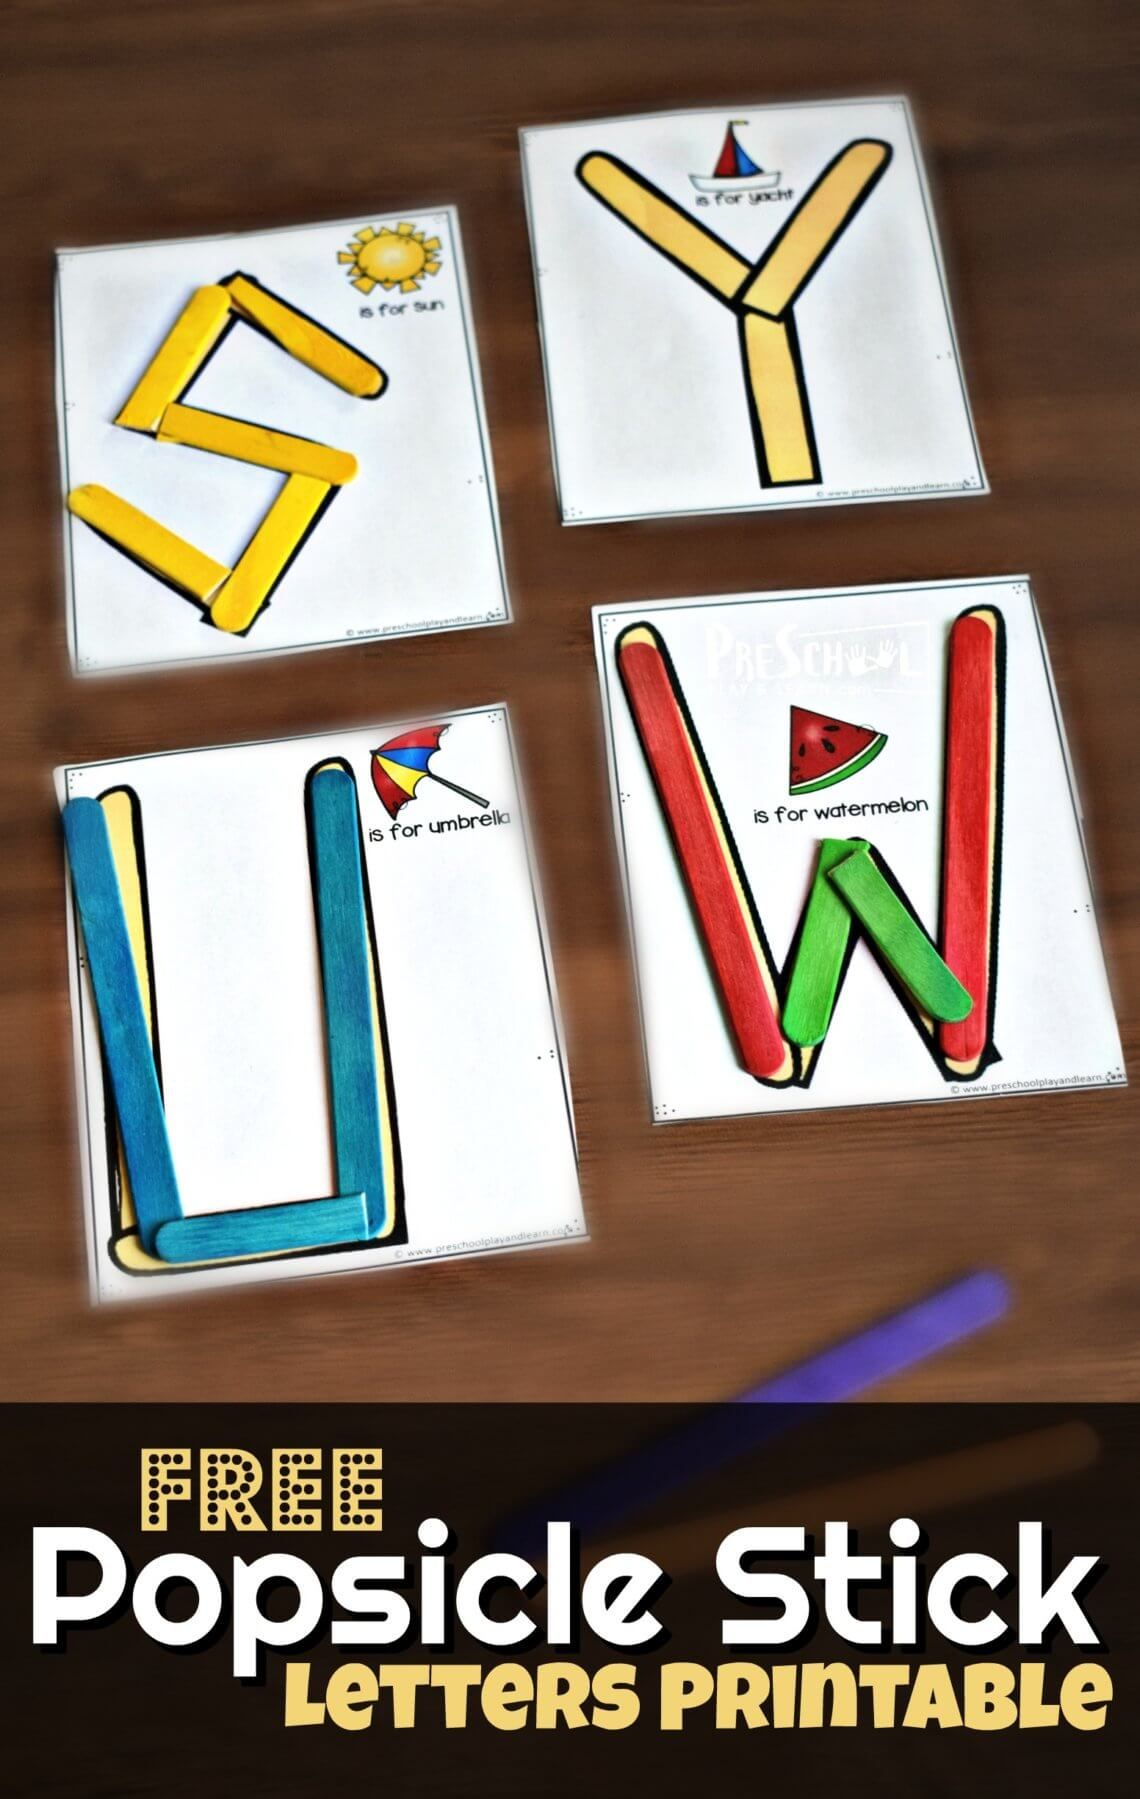 Popsicle Stick Letters Printables